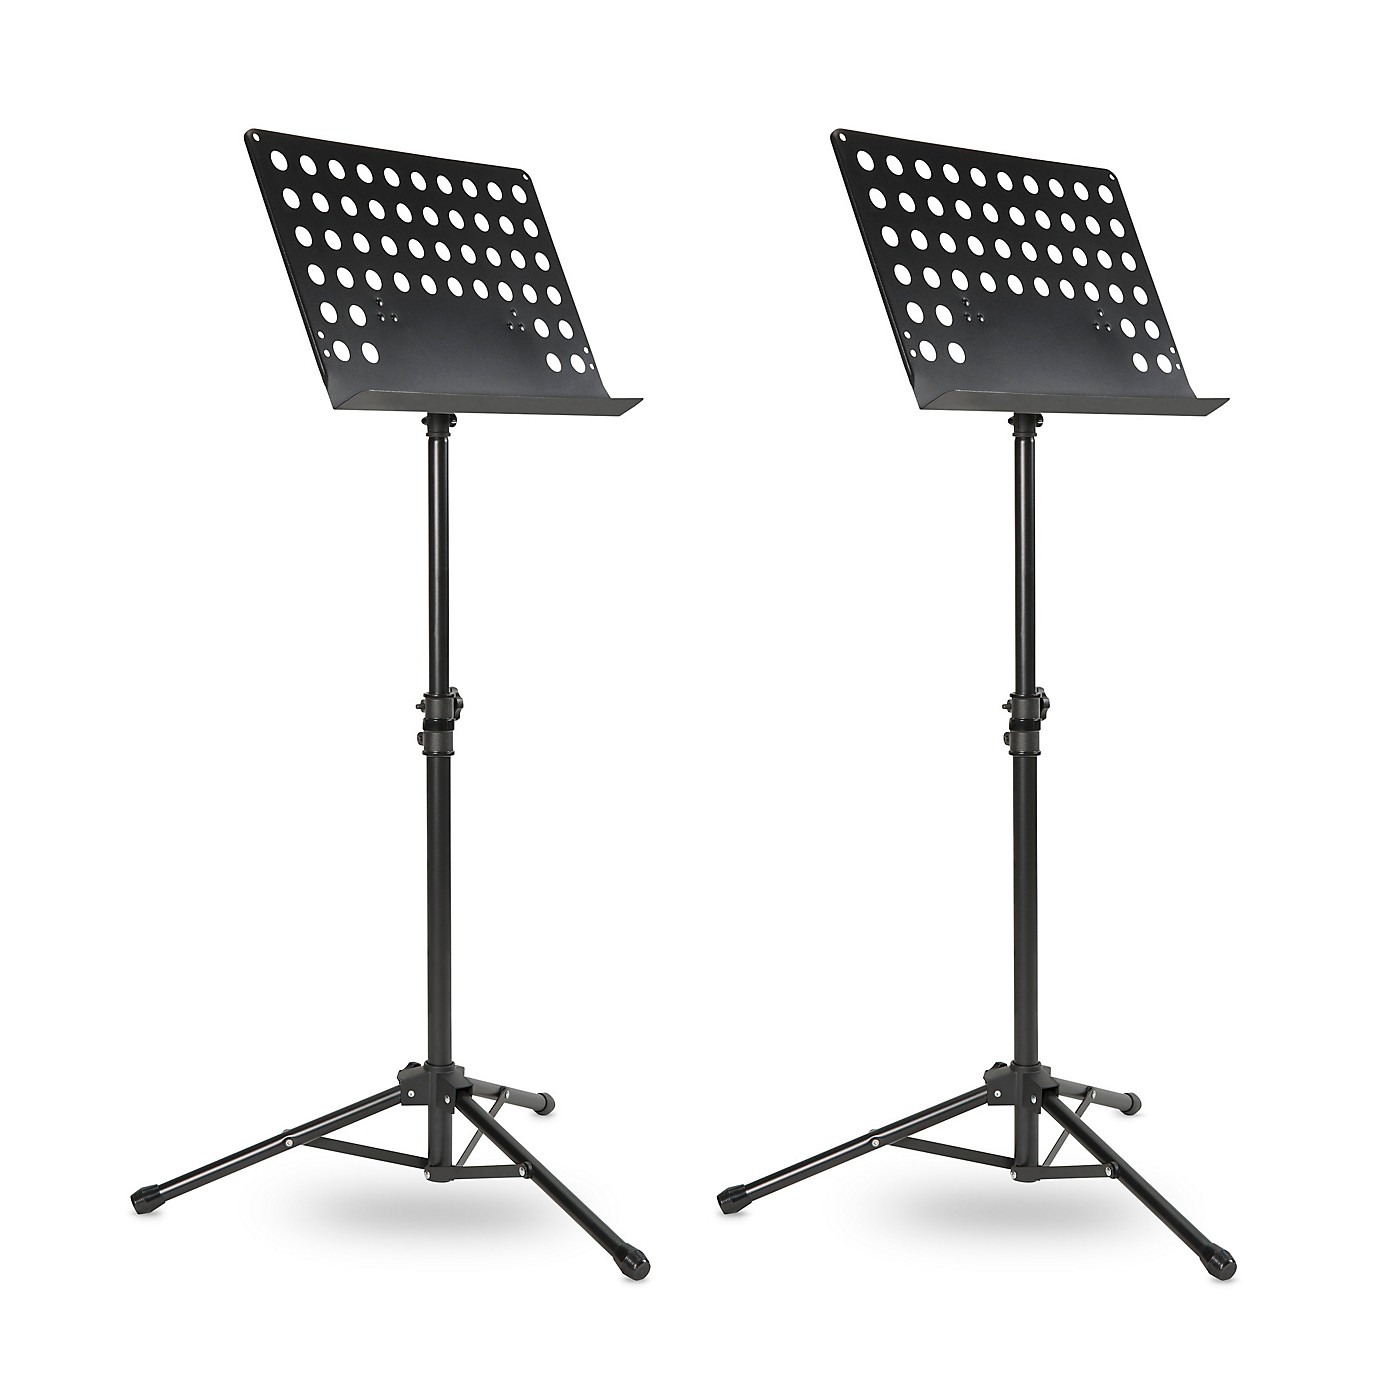 Musician's Gear Tripod Orchestral Music Stand Perforated Black - 2 Pack thumbnail